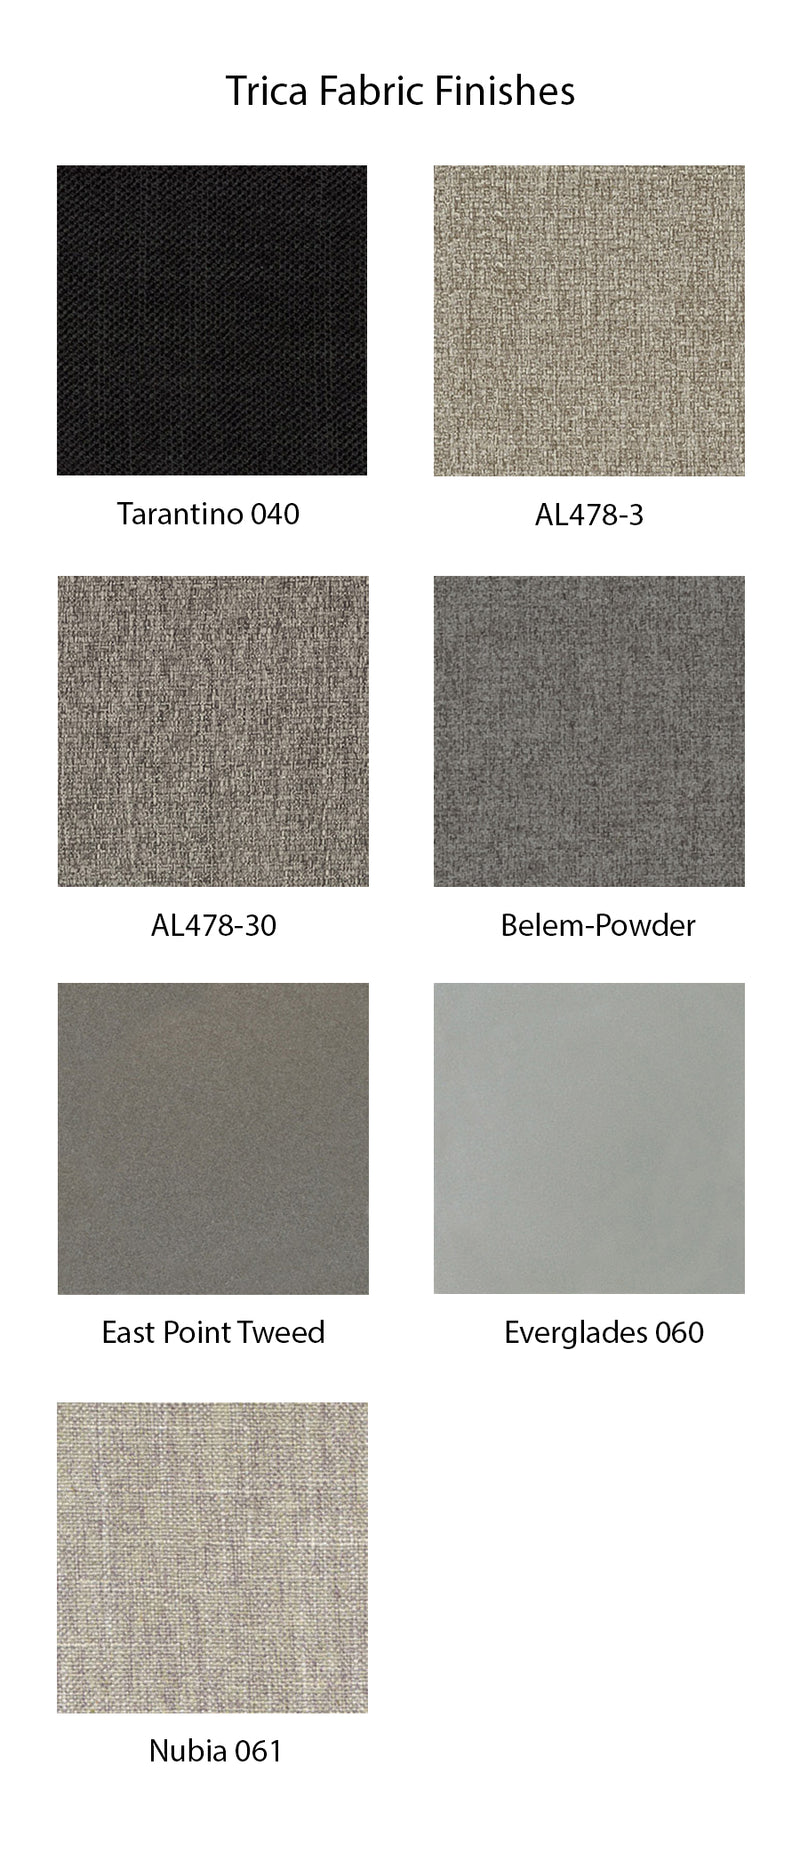 products/fabric-finishes-trica_cb3dee23-350e-4b68-a869-f9bb8aa0e7cf.jpg